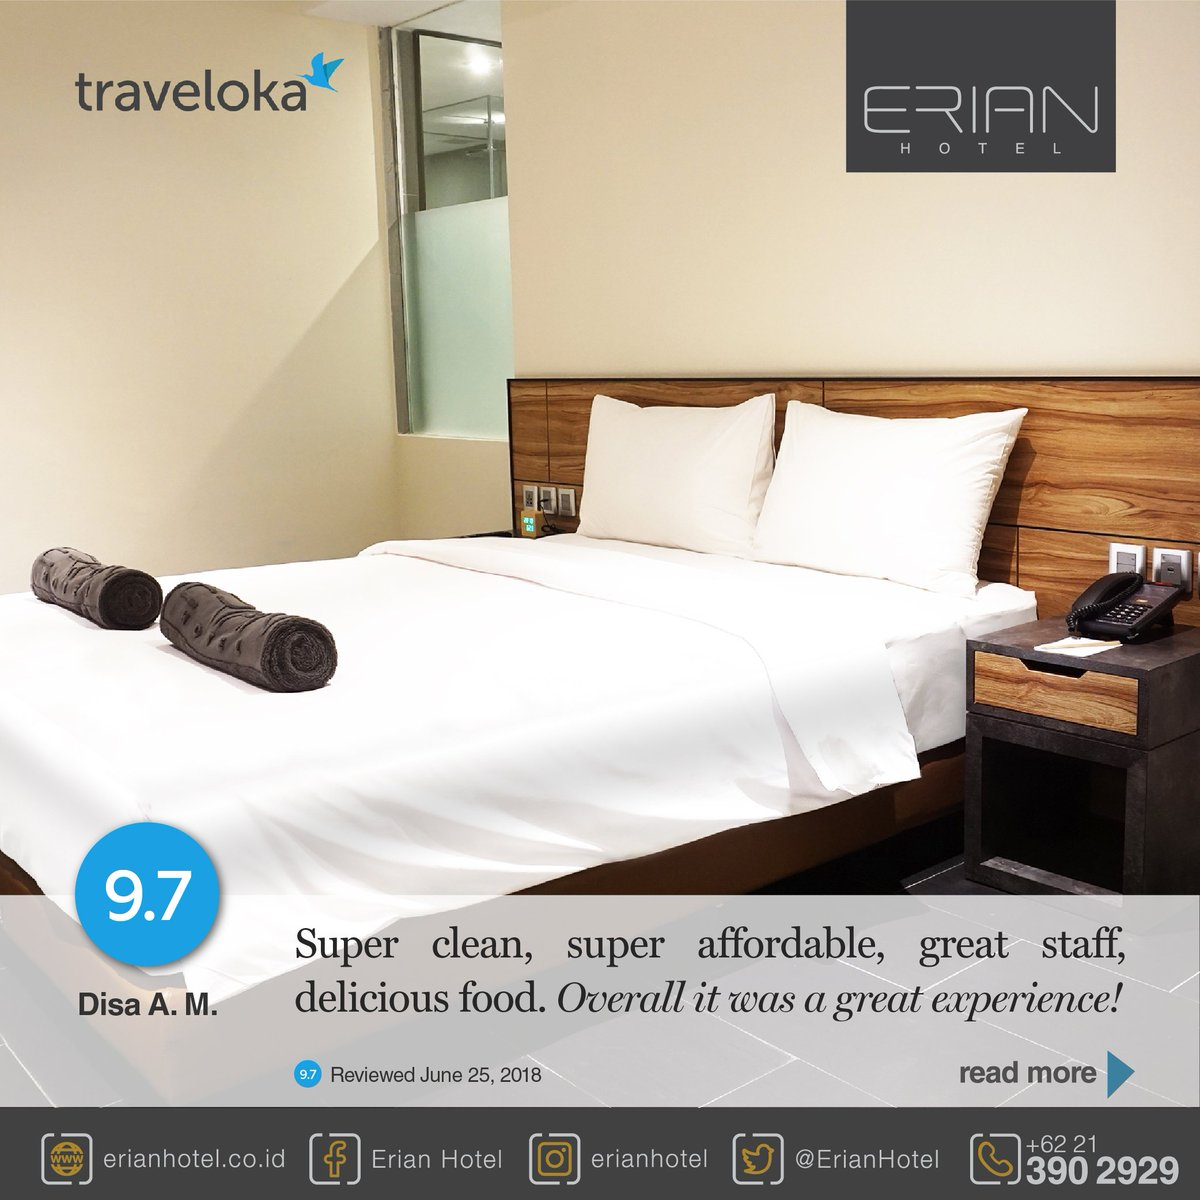 Erian Hotel On Twitter Our Guest Review Traveloka Disa A M Jun 25 2018 Overall It Was A Great Experience Read More Https T Co Fcyvyht6ou Erianhotel Hotel Businesshotel Travel Reviewhotel Traveloka Agoda Tripadvisor Indonesia